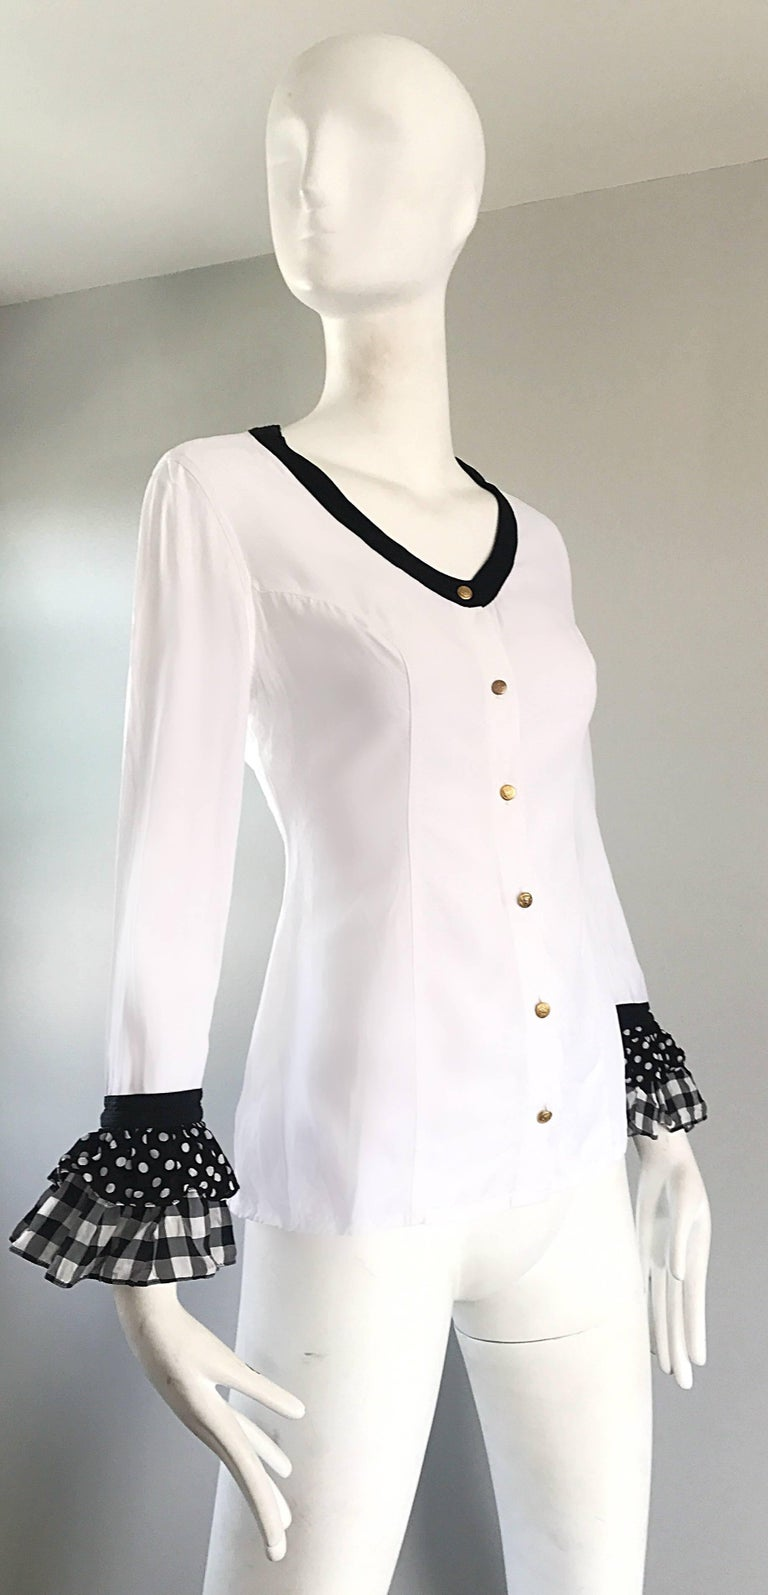 Vintage Gianni Versace 1990s Black and White Polka Dot Plaid 90s Blouse Top Rare For Sale 3